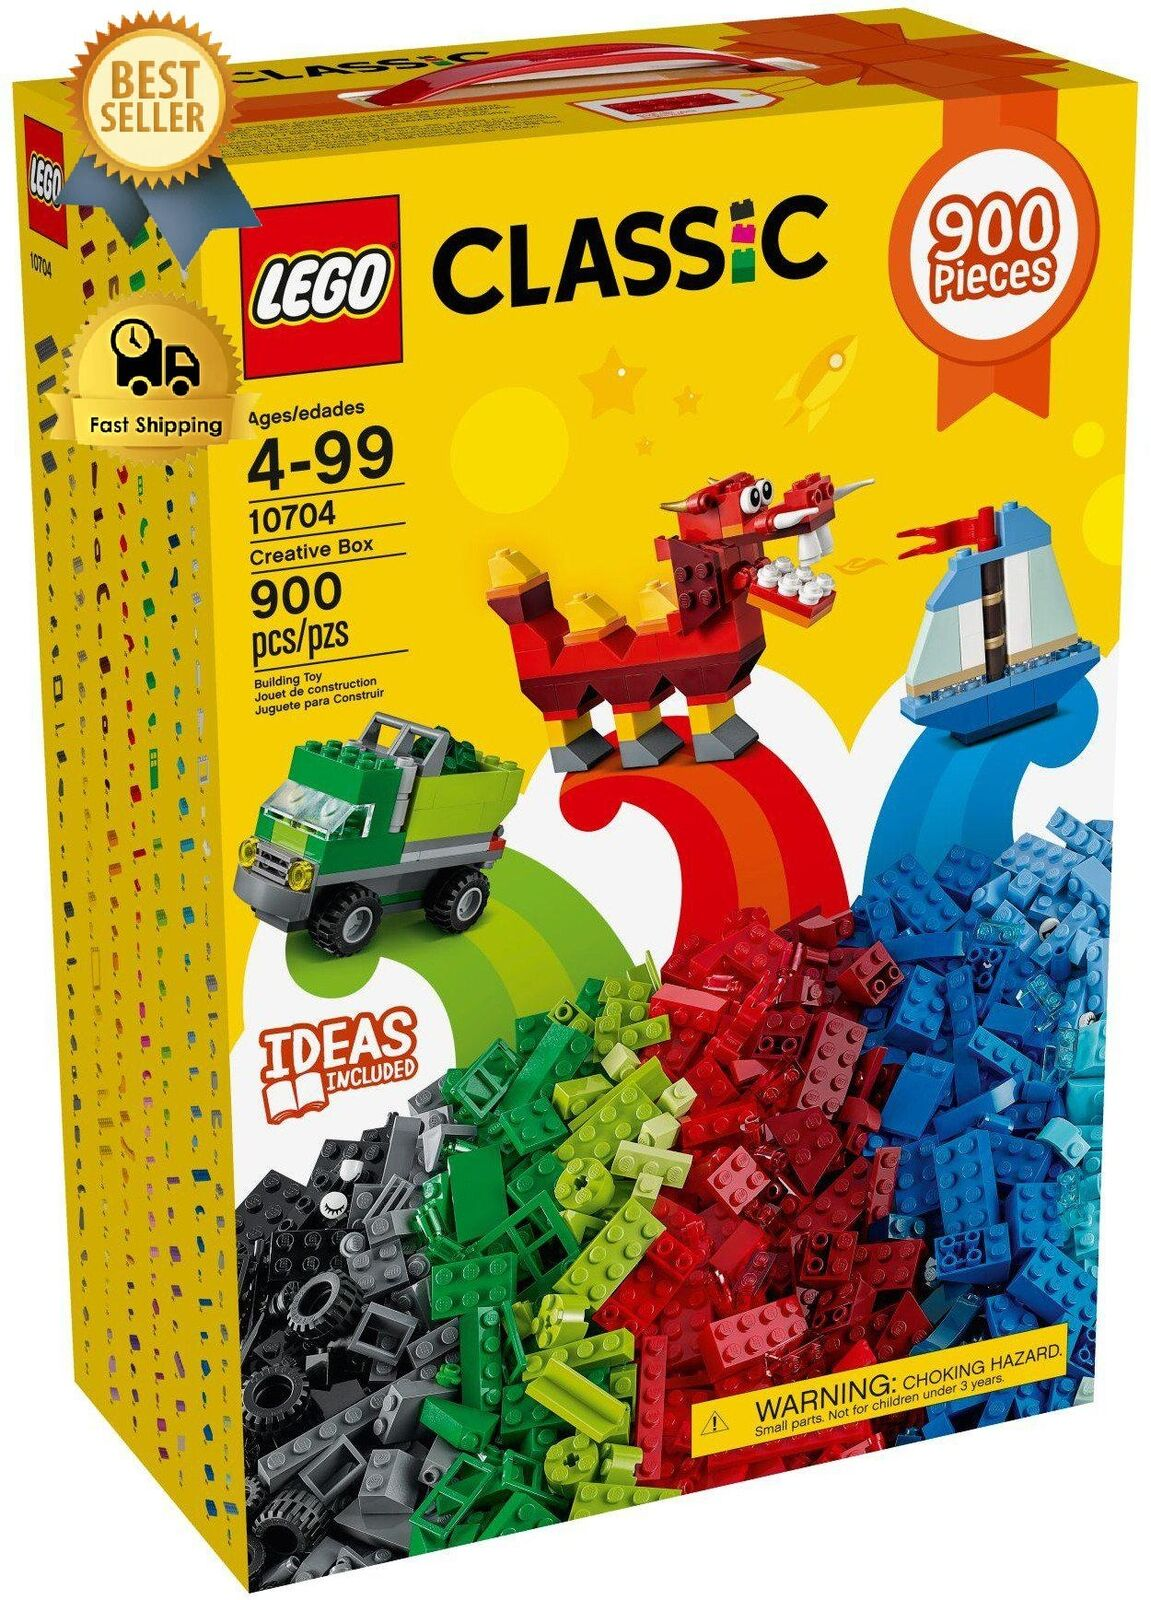 Lego Classic 900 Pieces Fun Bright Colours Encourages Open Ended Creativity.